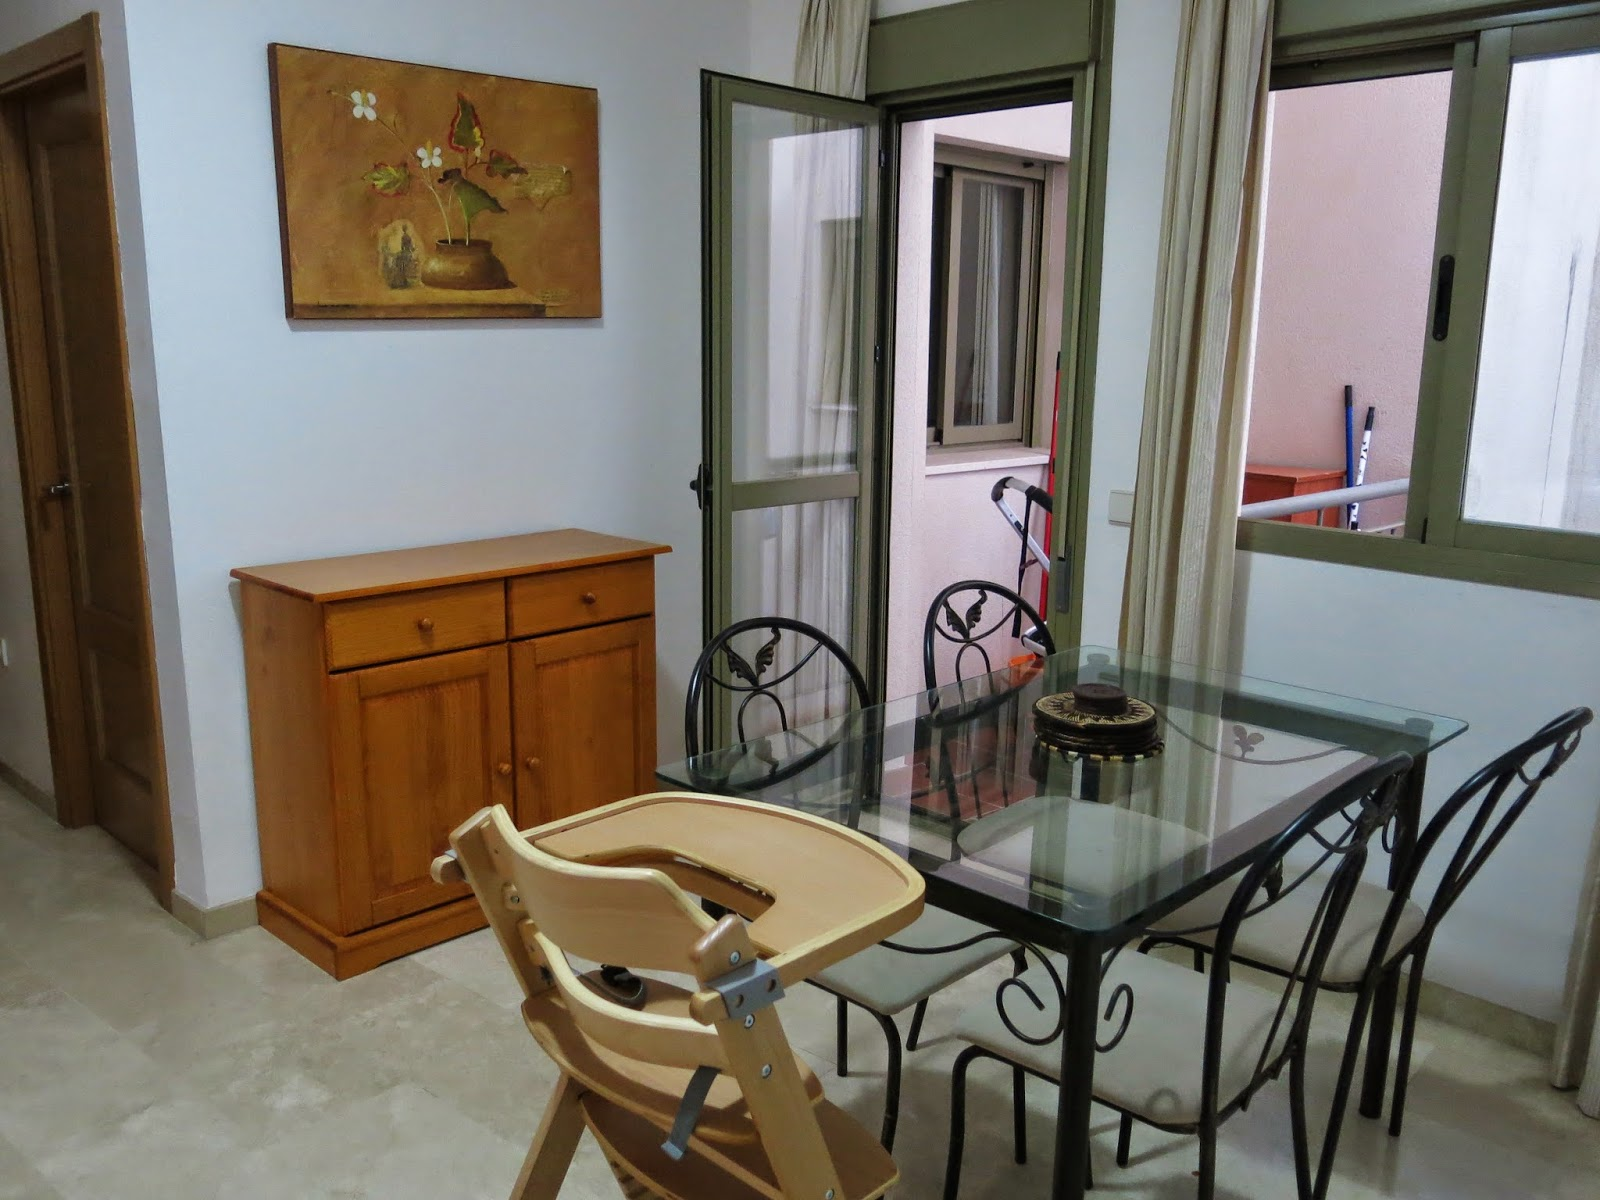 Photo of the dining area in our temporary apartment